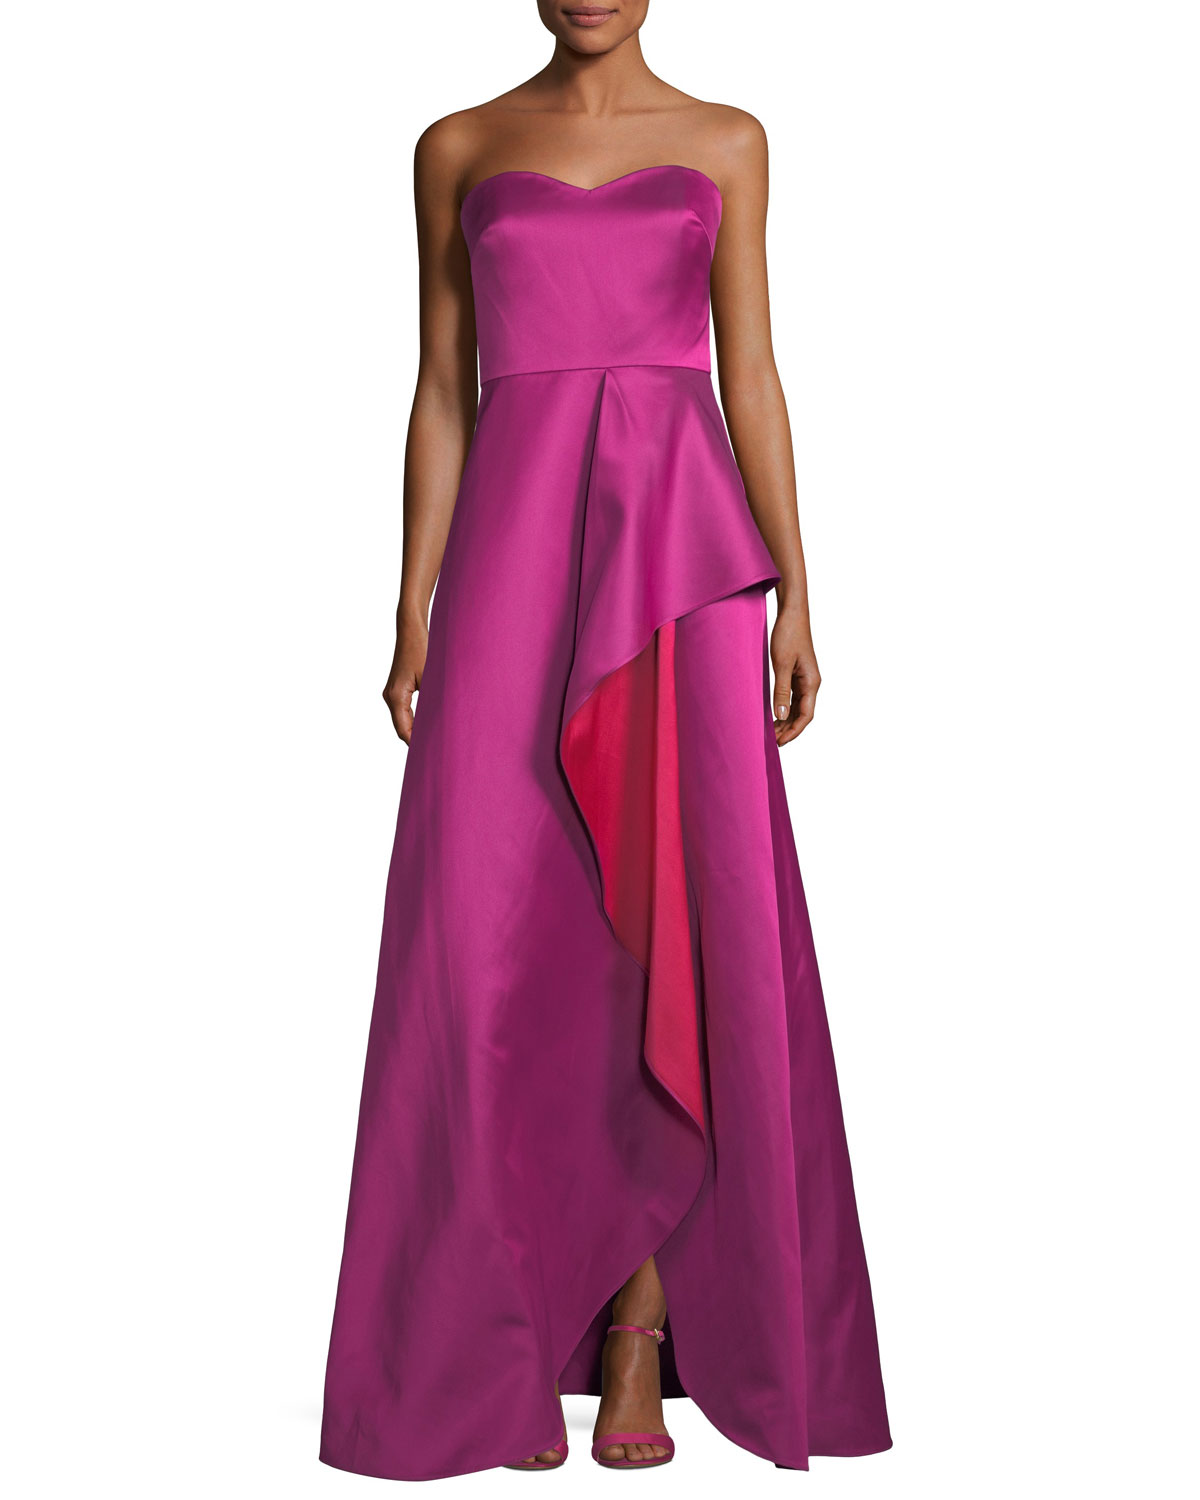 33150c3bbc51 Badgley Mischka Collection Strapless Sweetheart Contrast Ruffle Gown ...